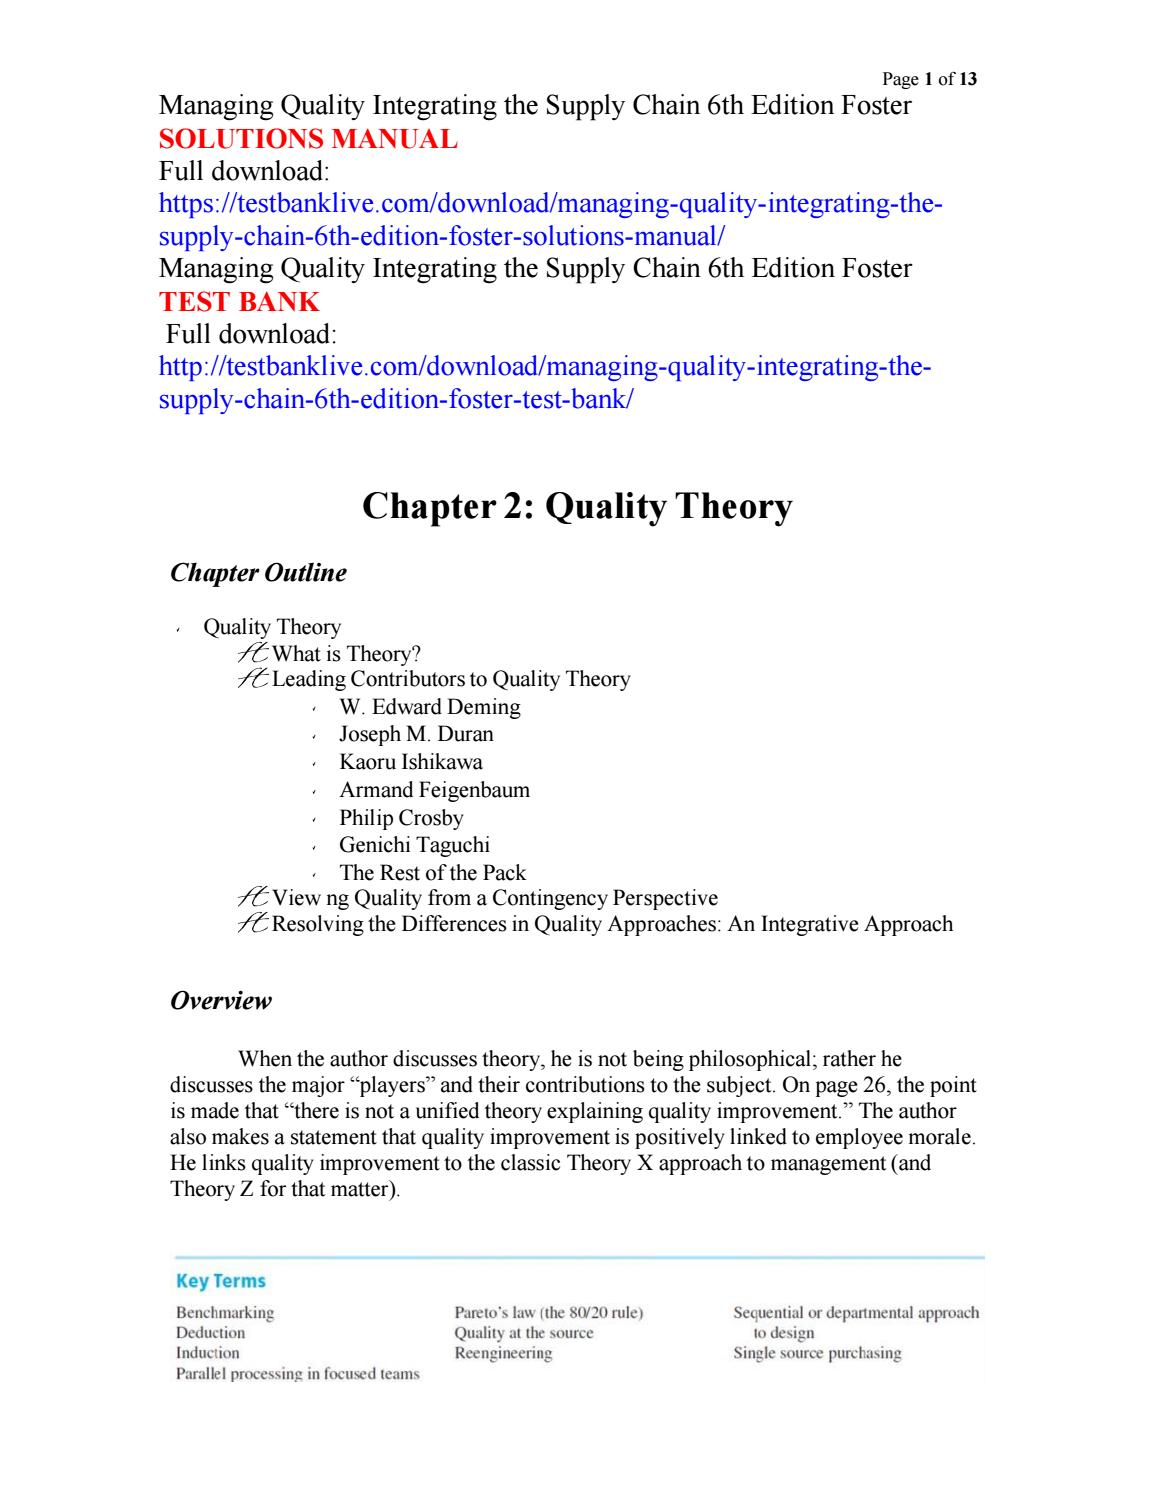 Managing quality integrating the supply chain 6th edition foster solutions  manual by windy4549 - issuu